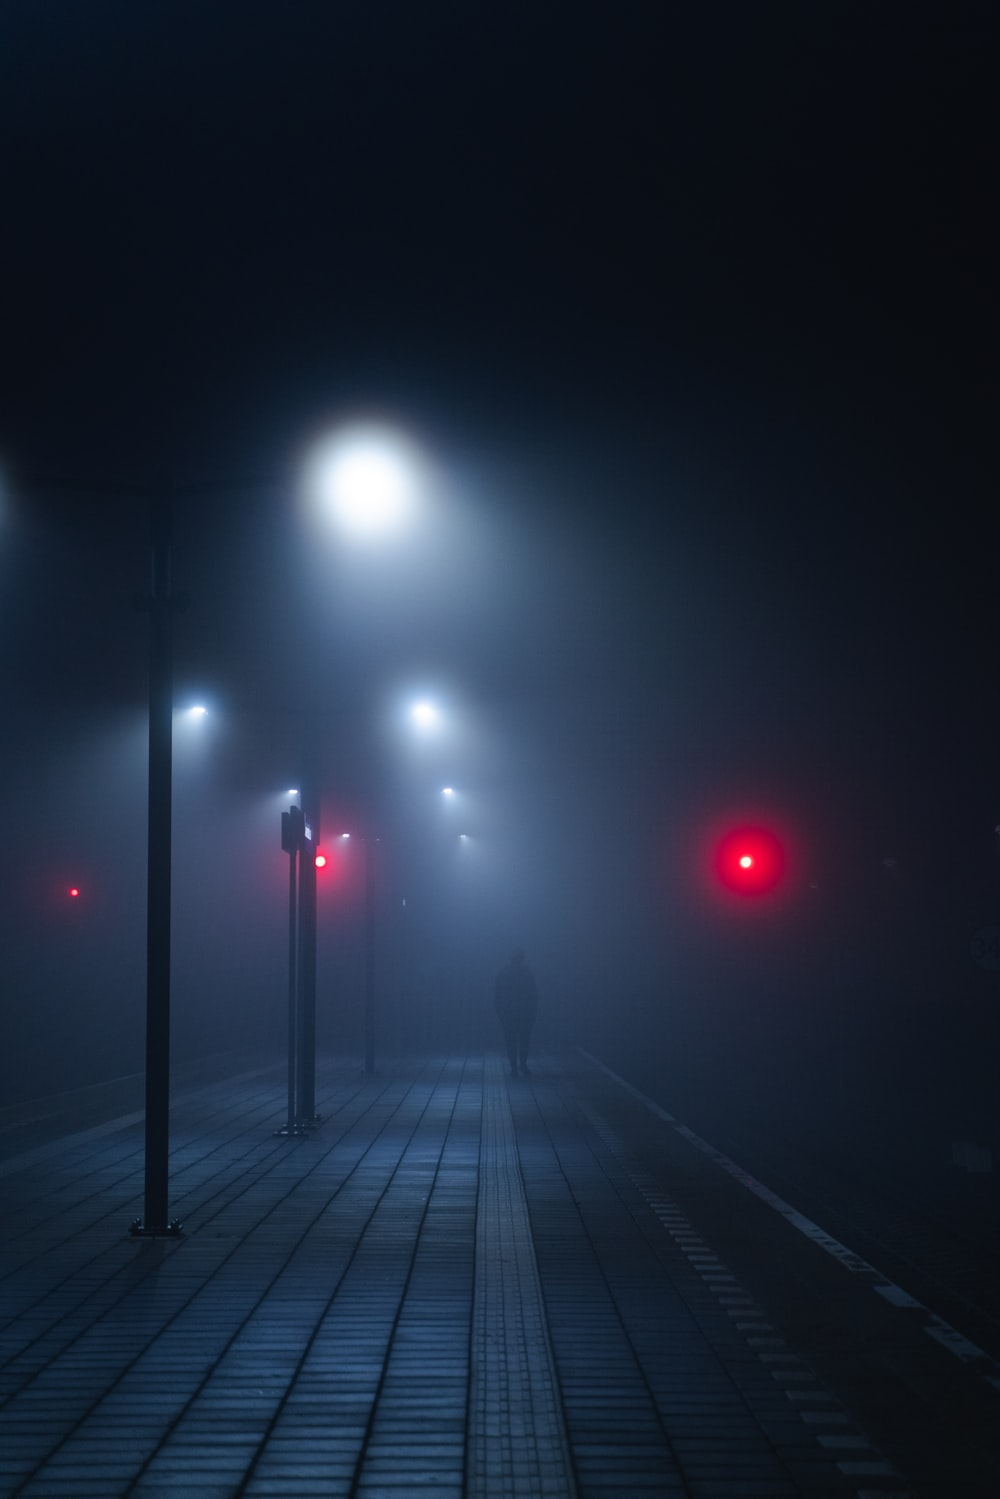 person standing near lampposts during night